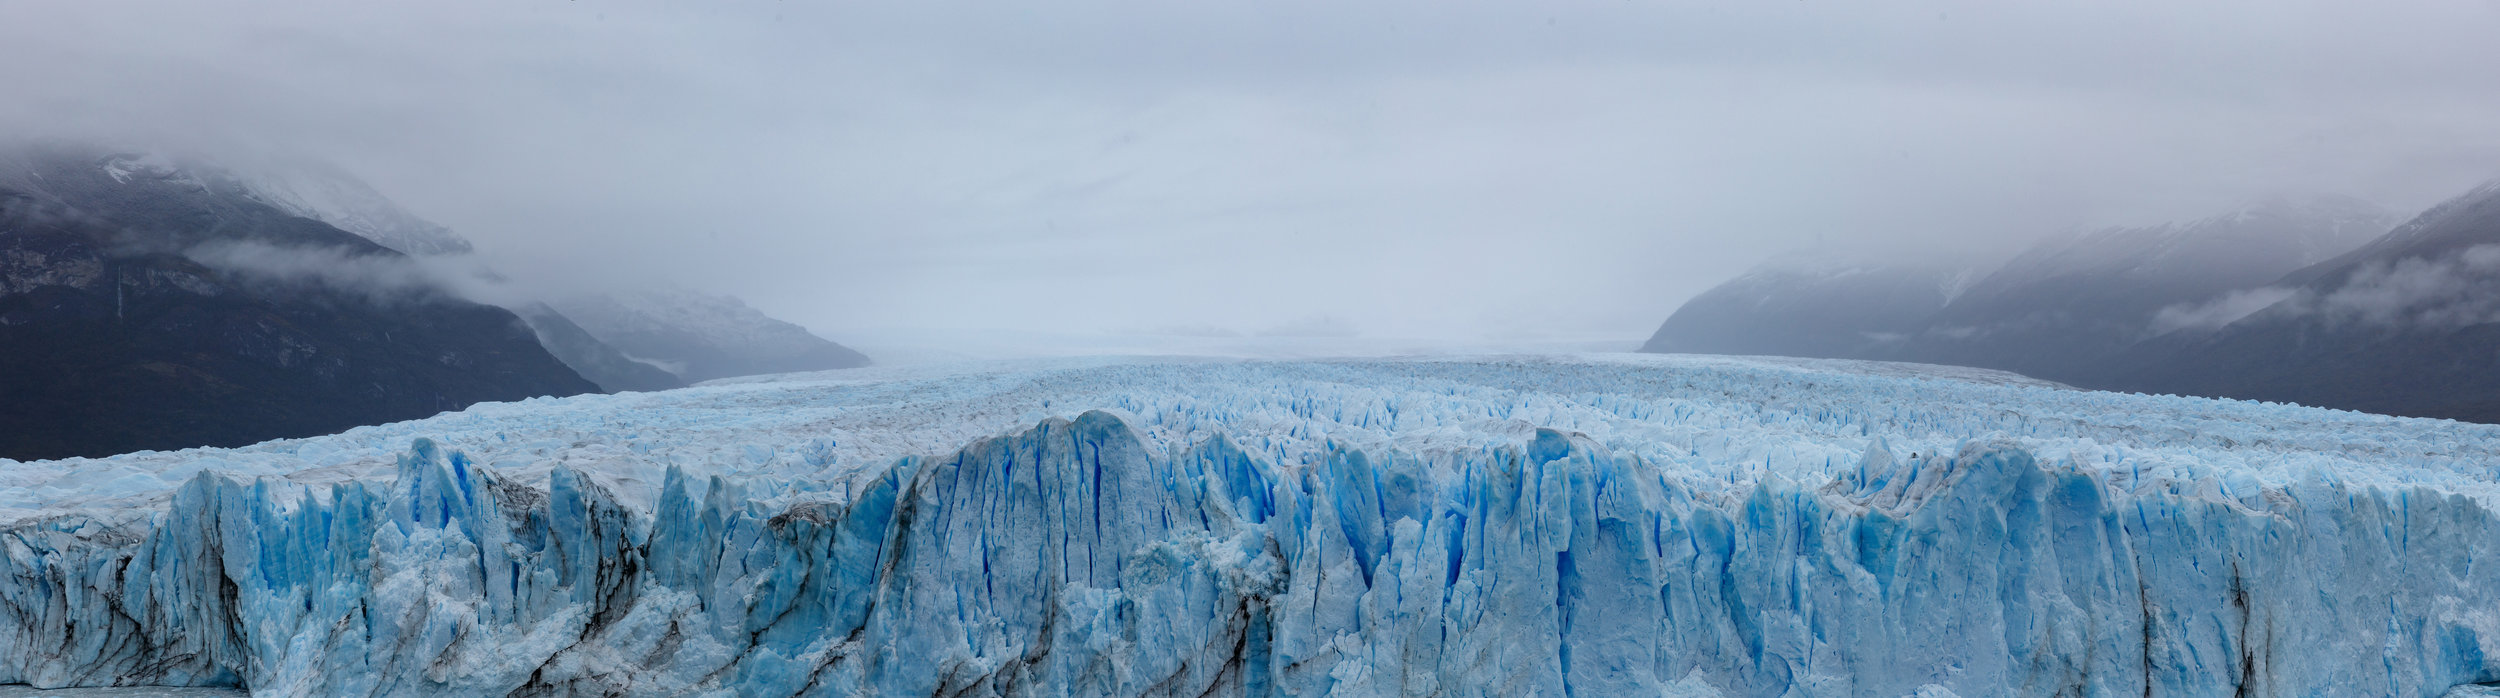 The 5km wide glacier squeezing through the mountains